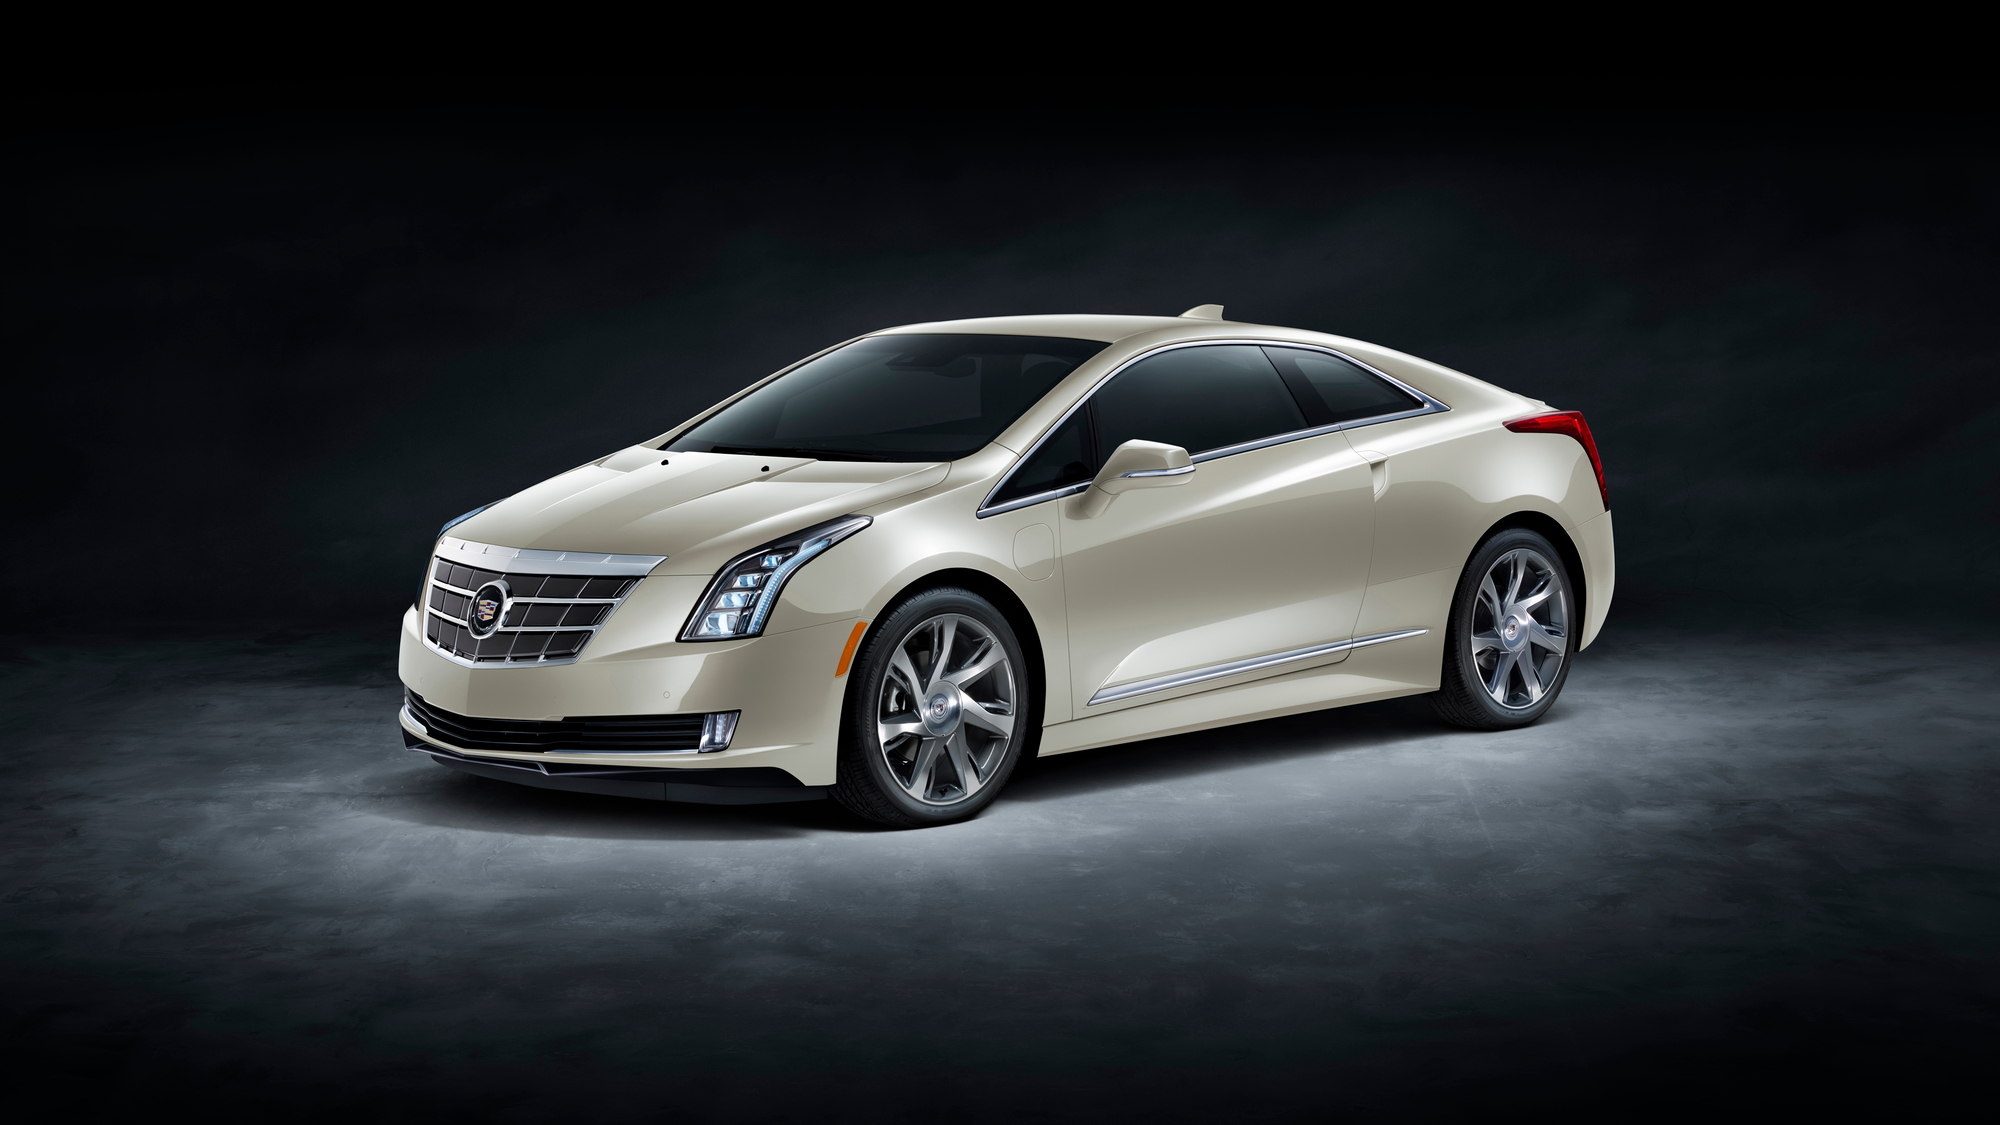 2014 Saks Fifth Avenue Special Edition Cadillac ELR